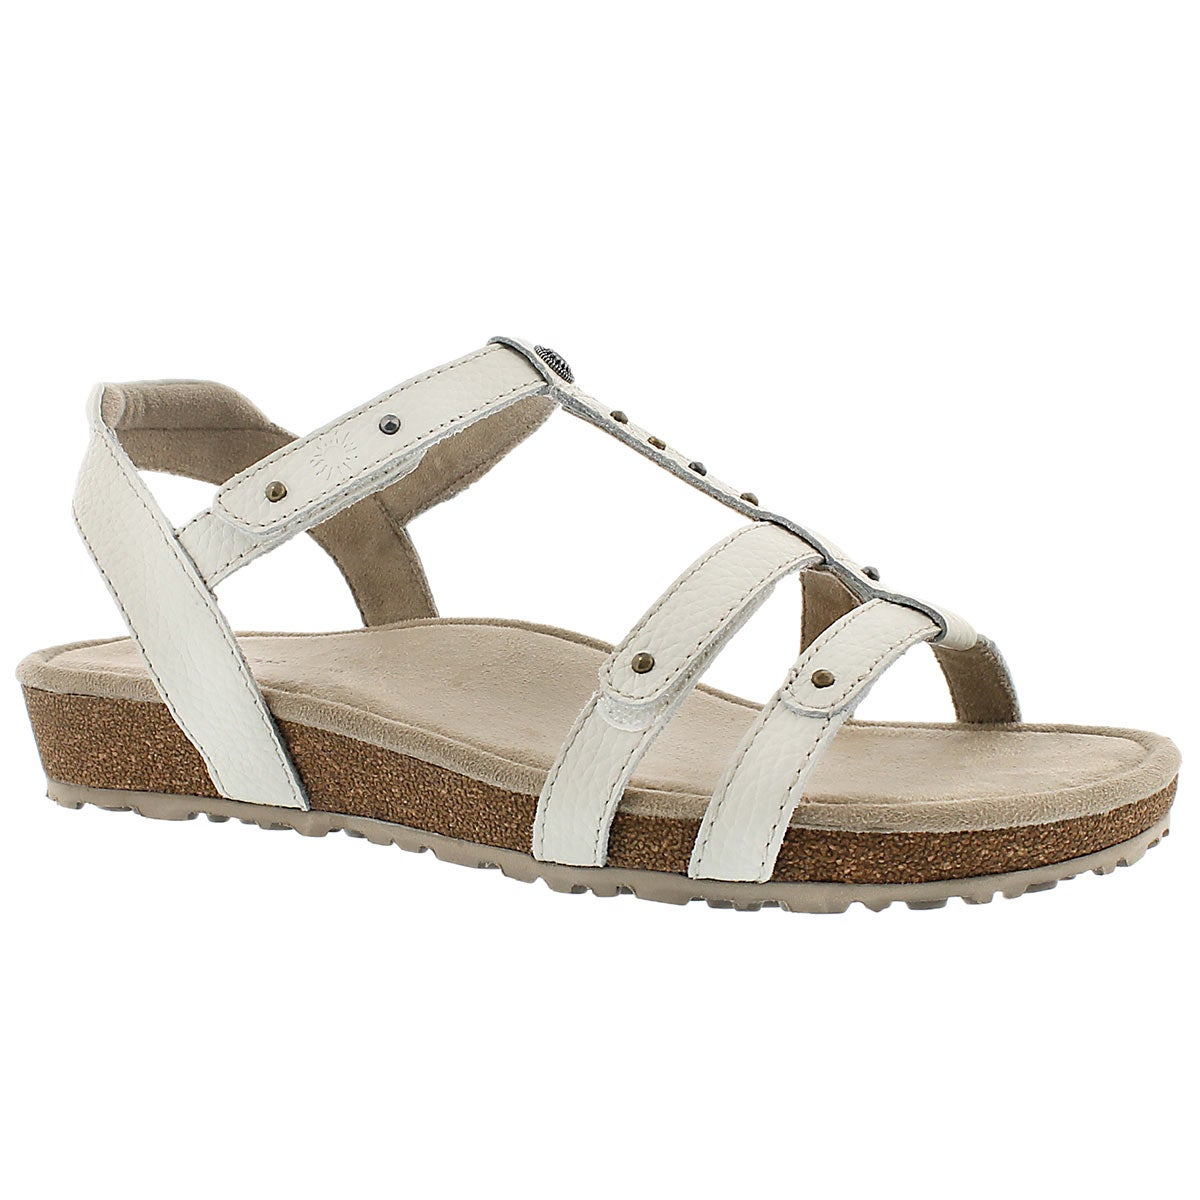 Women's THELMA T Strap white wedge sandals